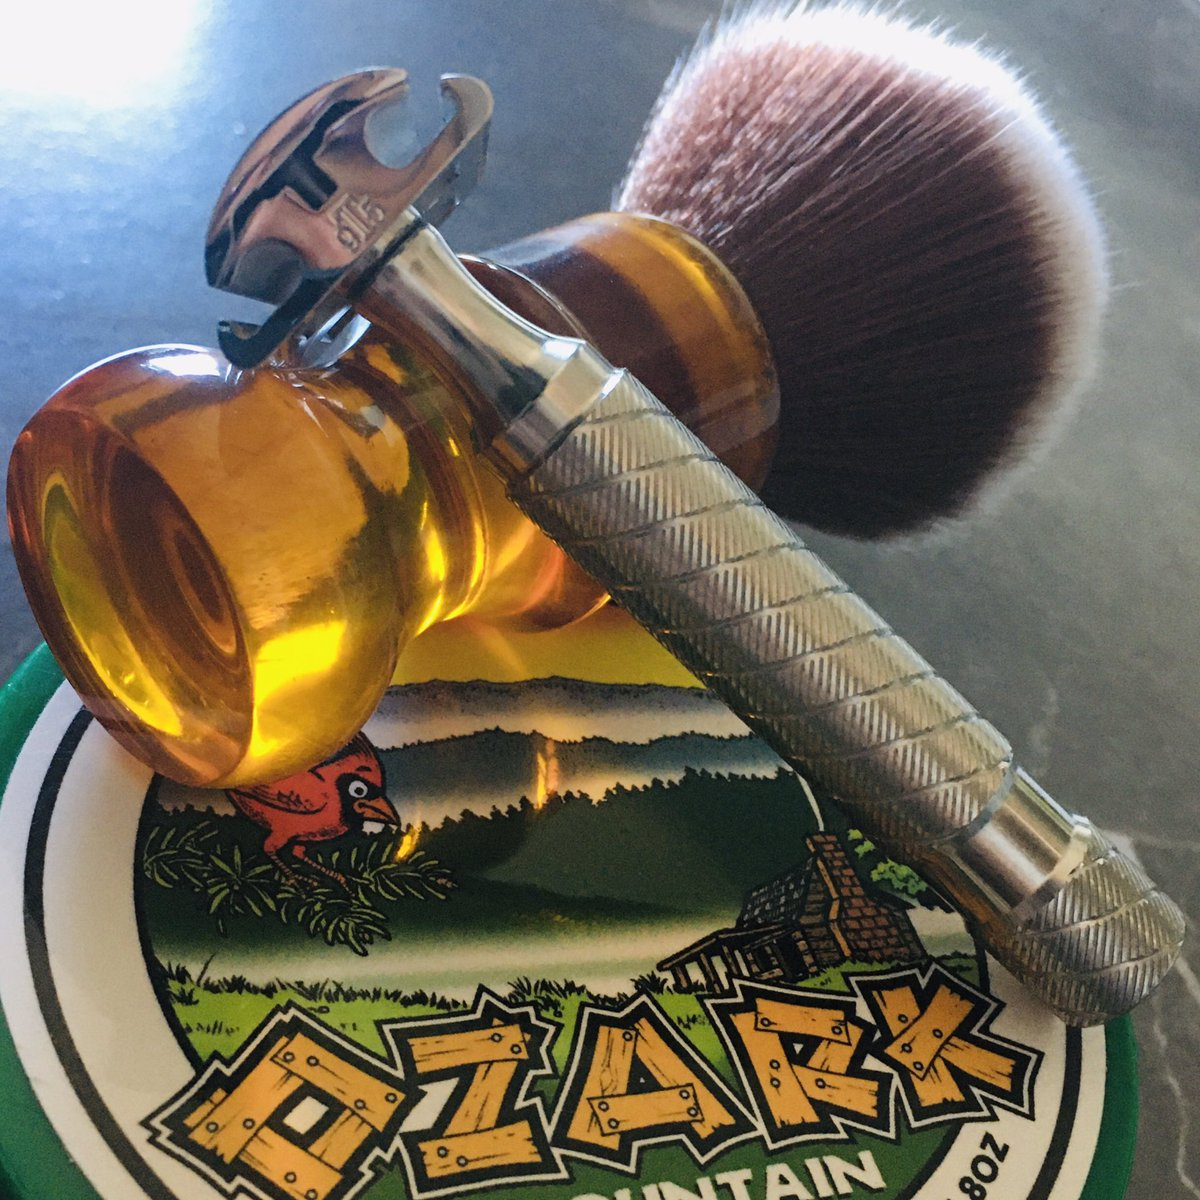 Good morning you all friends! #sotd A superb shave today with #Polsilver from Poland @Timelessrazor  @stirlingsoap #Ozark mountain  #MotherLode Vidal Pino Silvestrepic.twitter.com/gg7AJ4eLlA